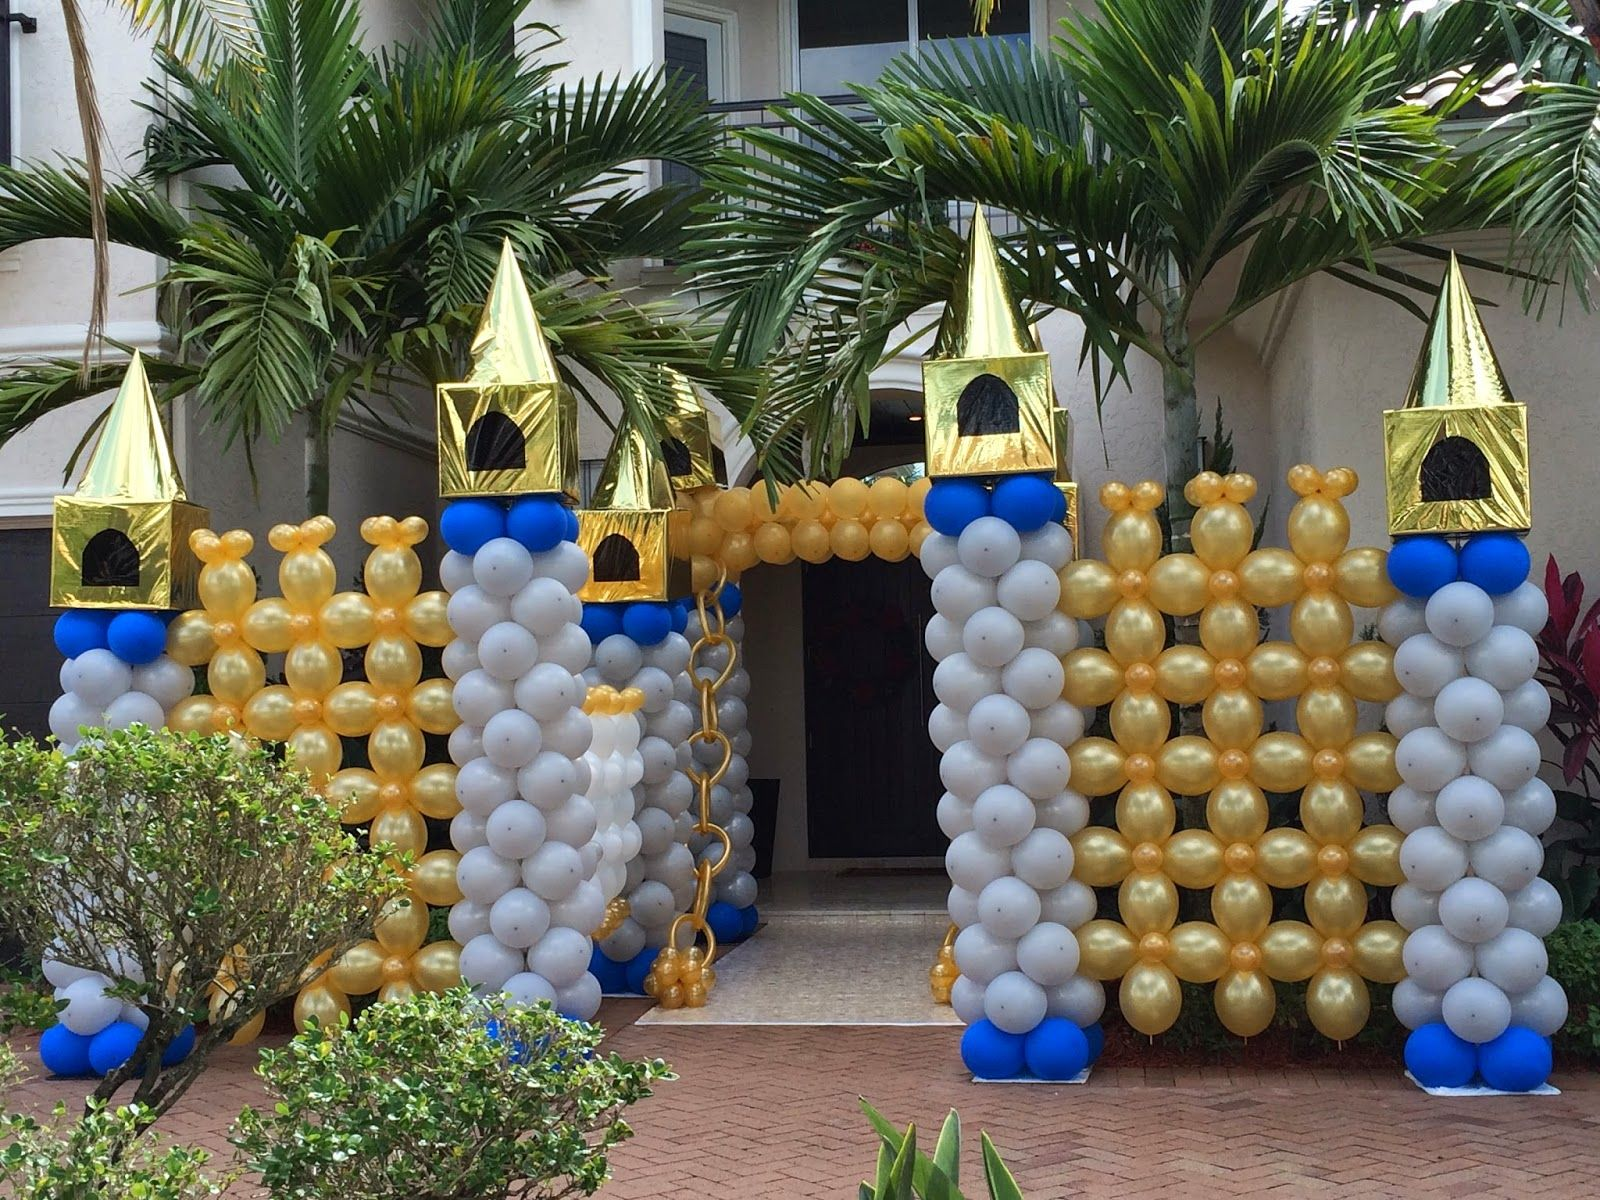 Princess Balloon Decoration 17 Best Images About Balloon Decorations On Pinterest Wedding